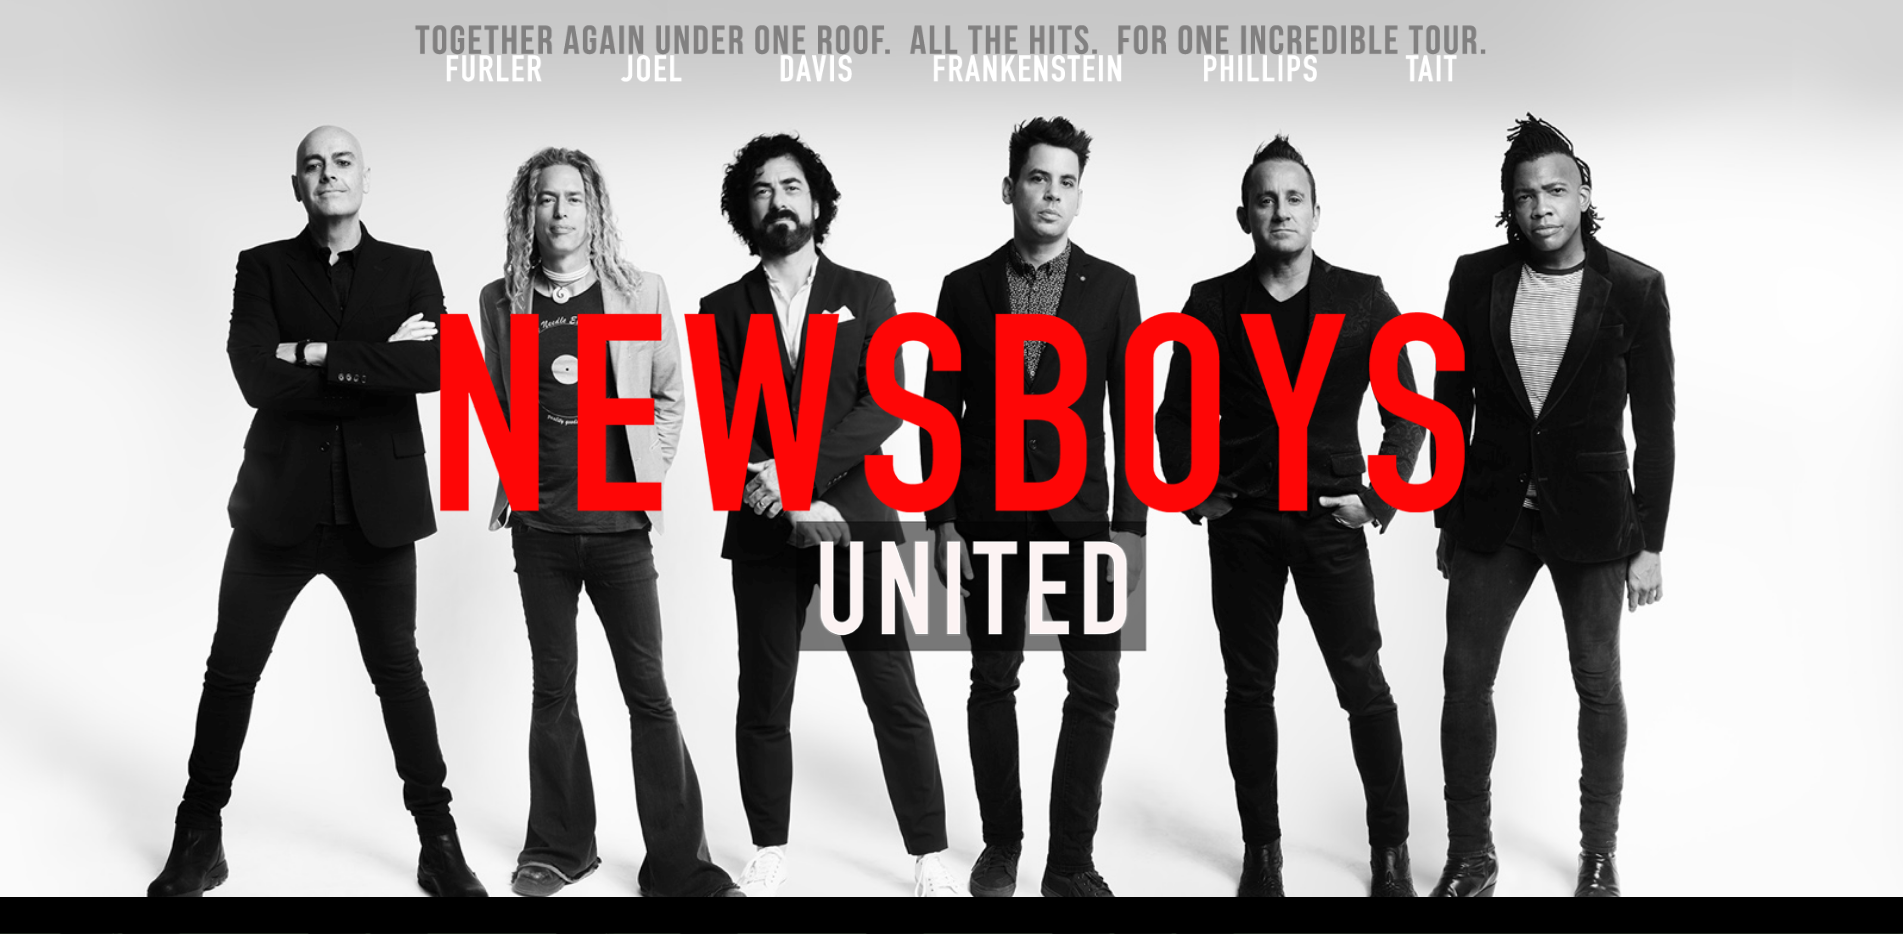 Newsboysunited